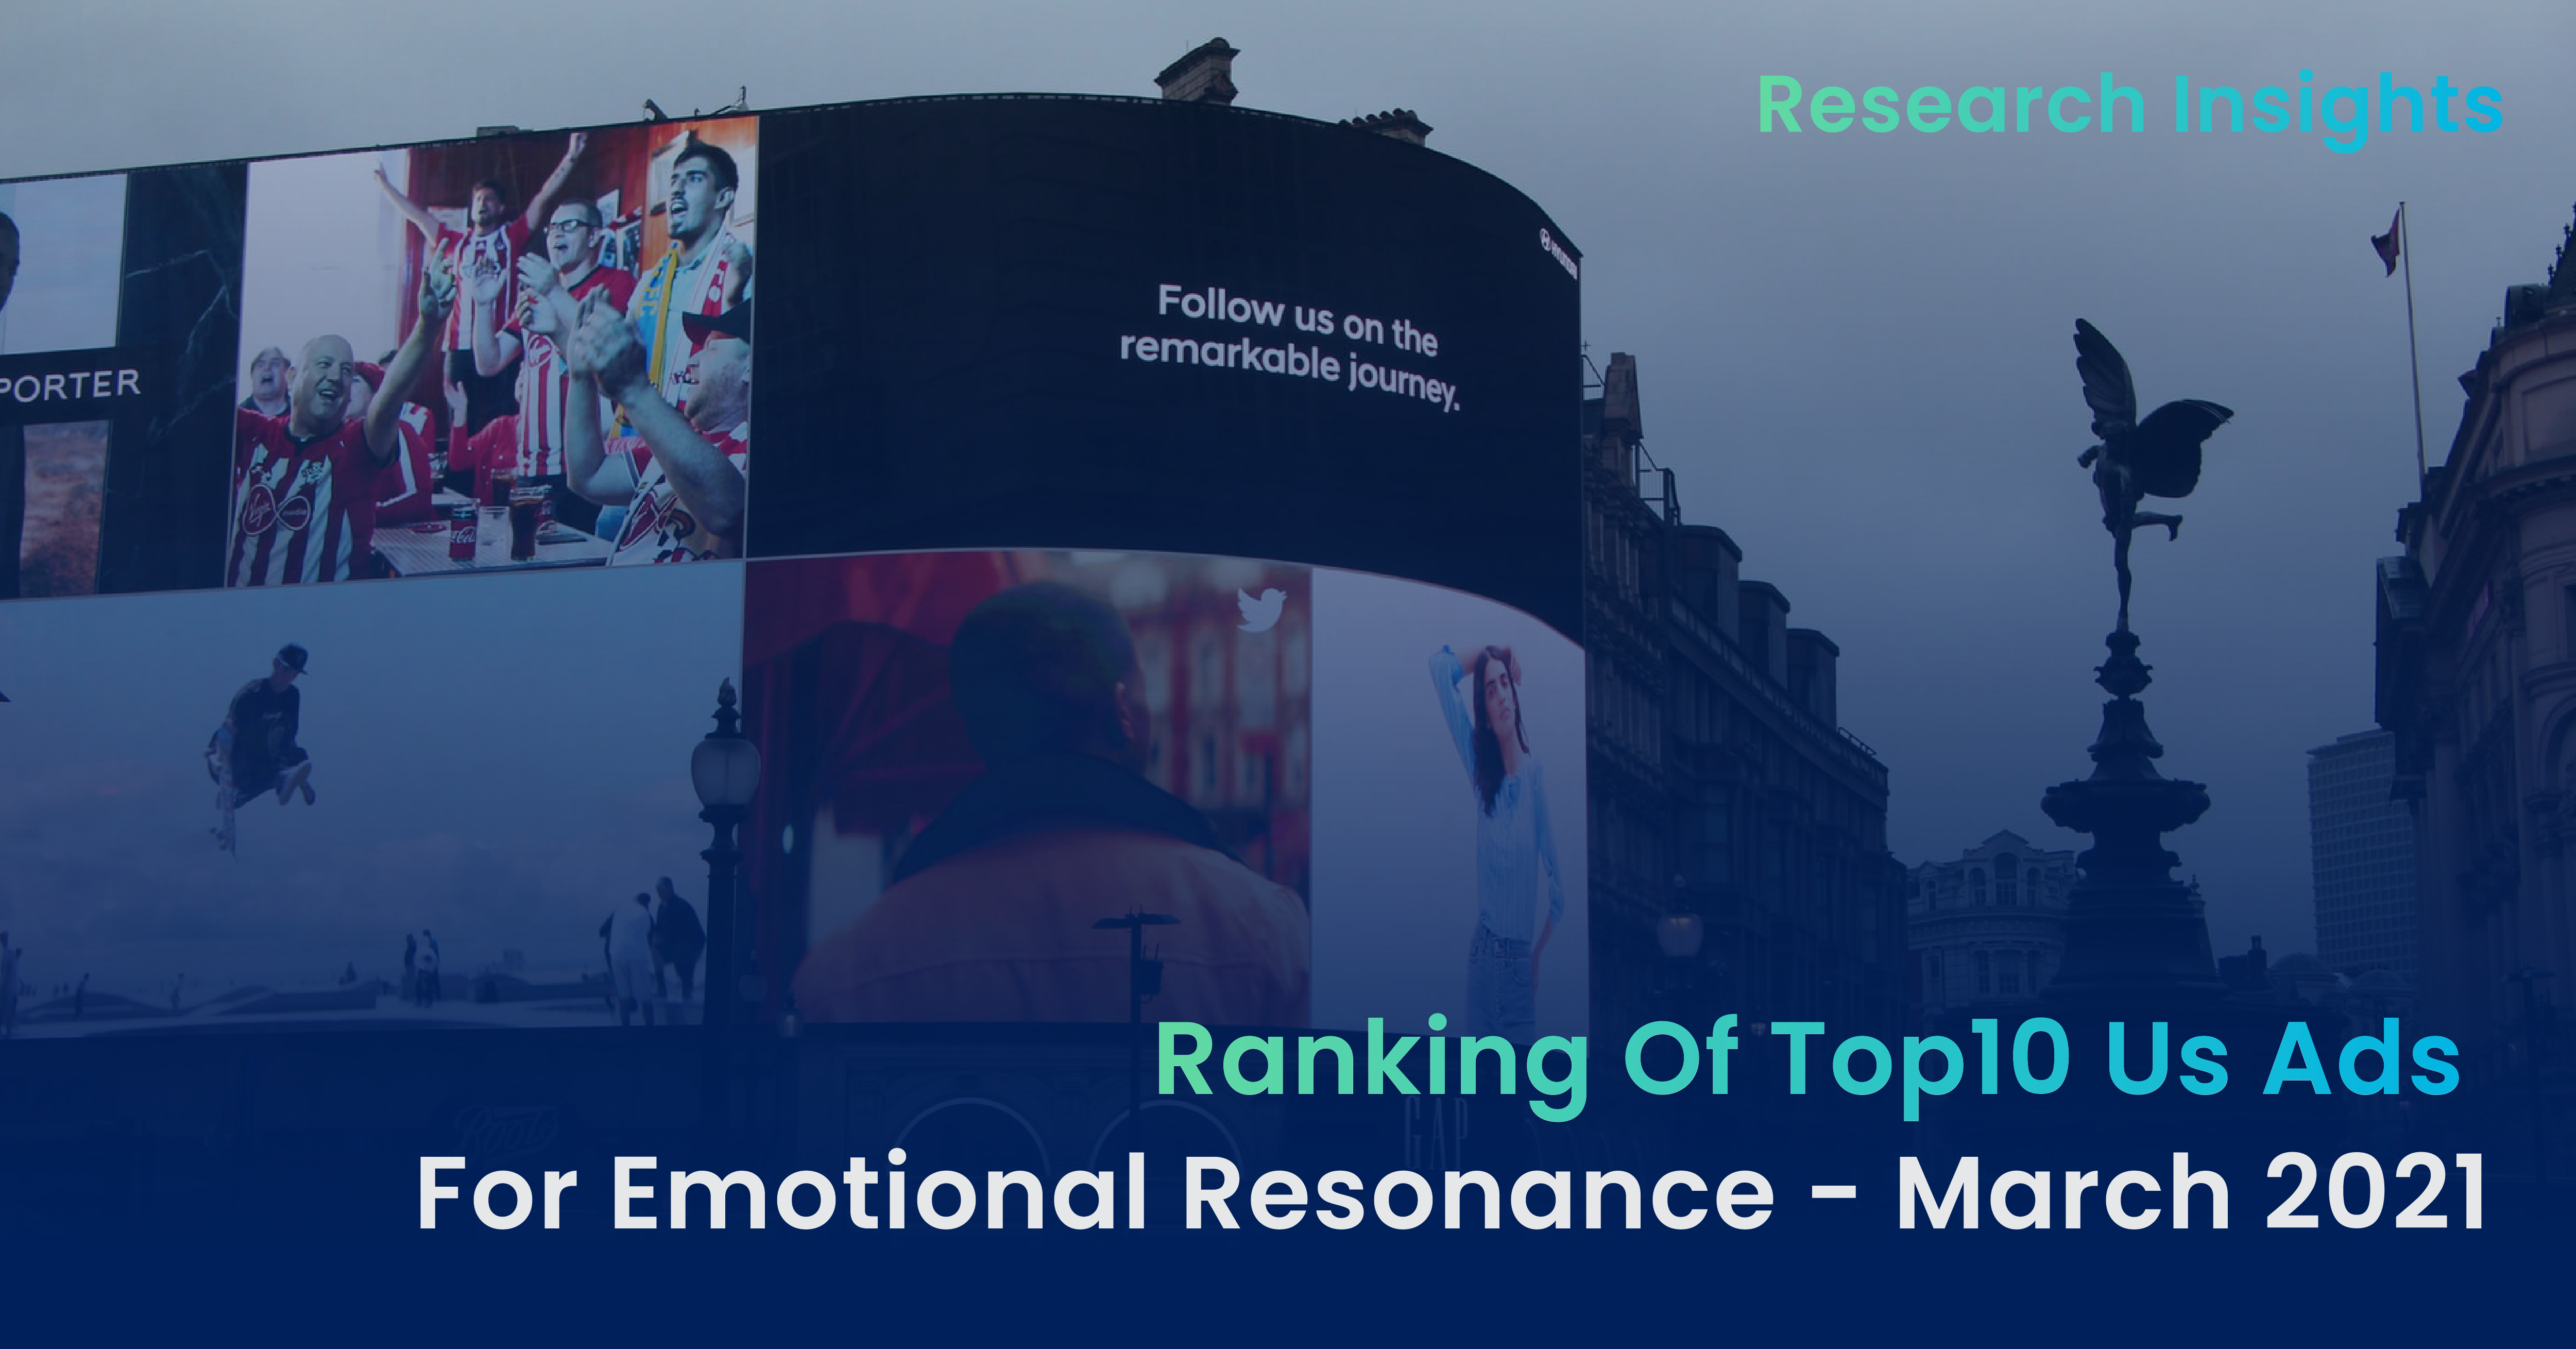 Using Ad Insights to Rank the Top 10 US Ads for Emotional Resonance